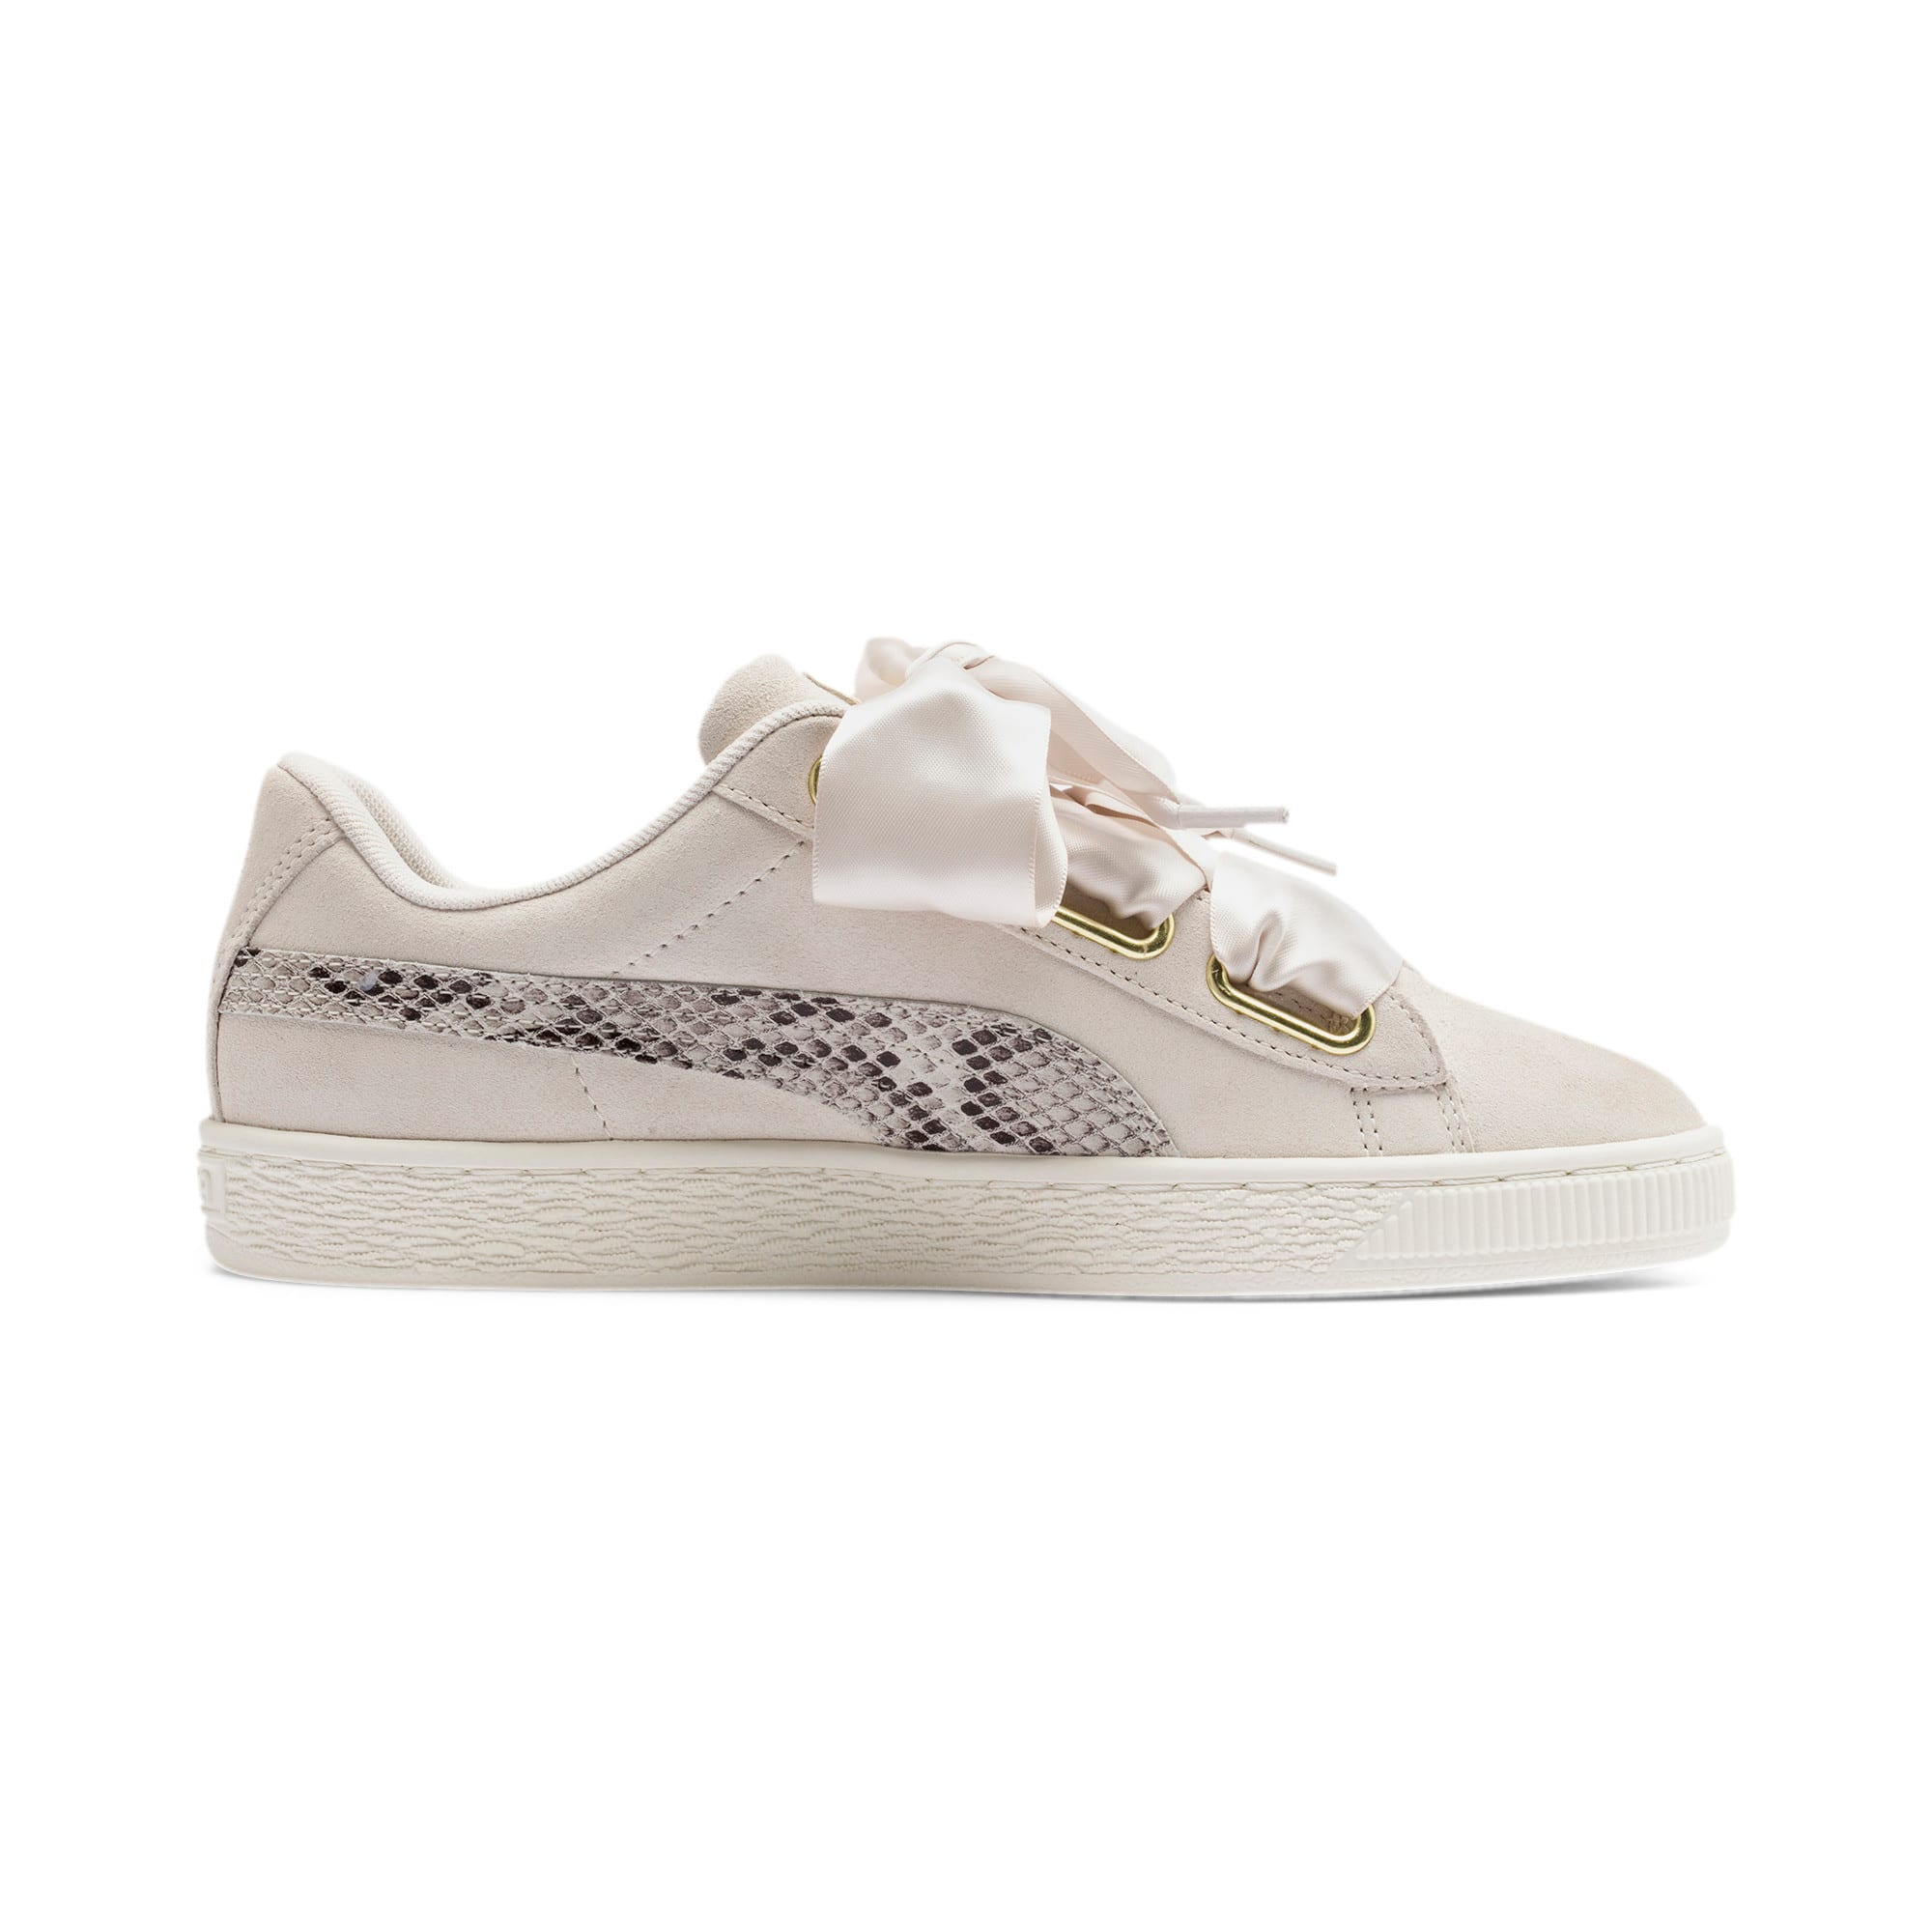 Thumbnail 6 of Suede Heart Snake Lux Women's Sneakers, Pastel Parchment-PTeam Gold, medium